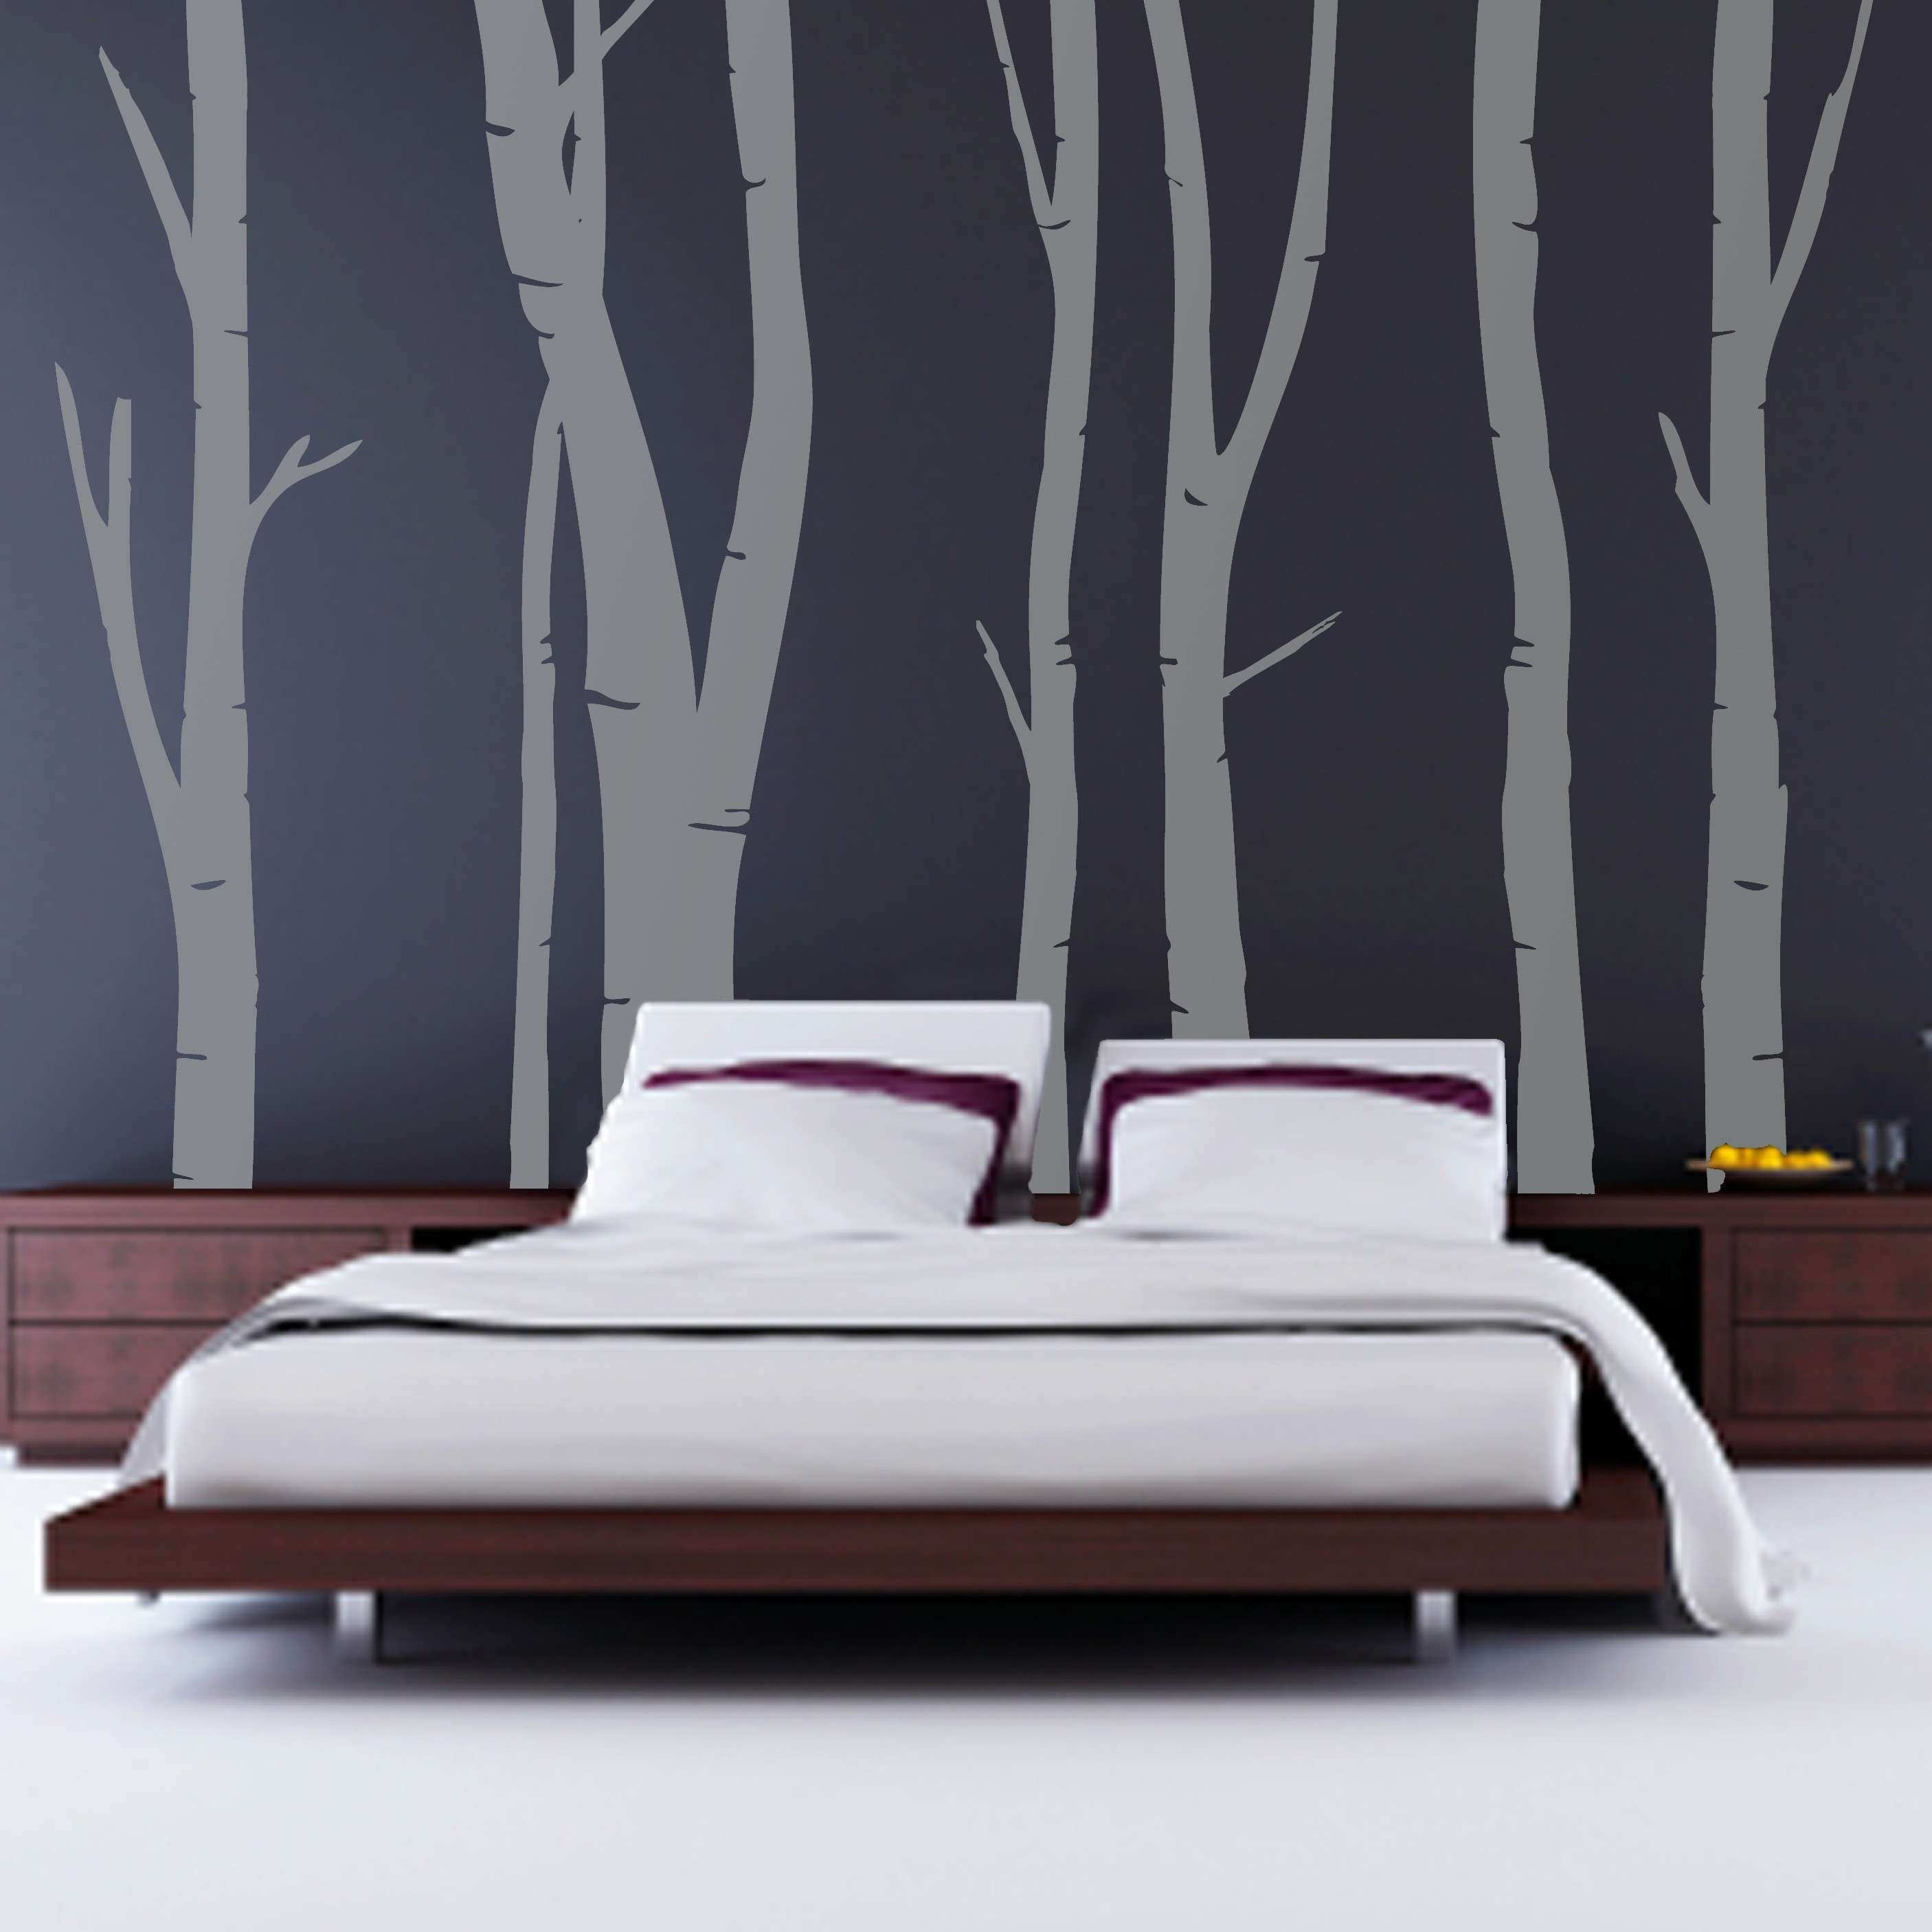 Wall Art for Living Room Beautiful Wall Decals for Bedroom Unique 1